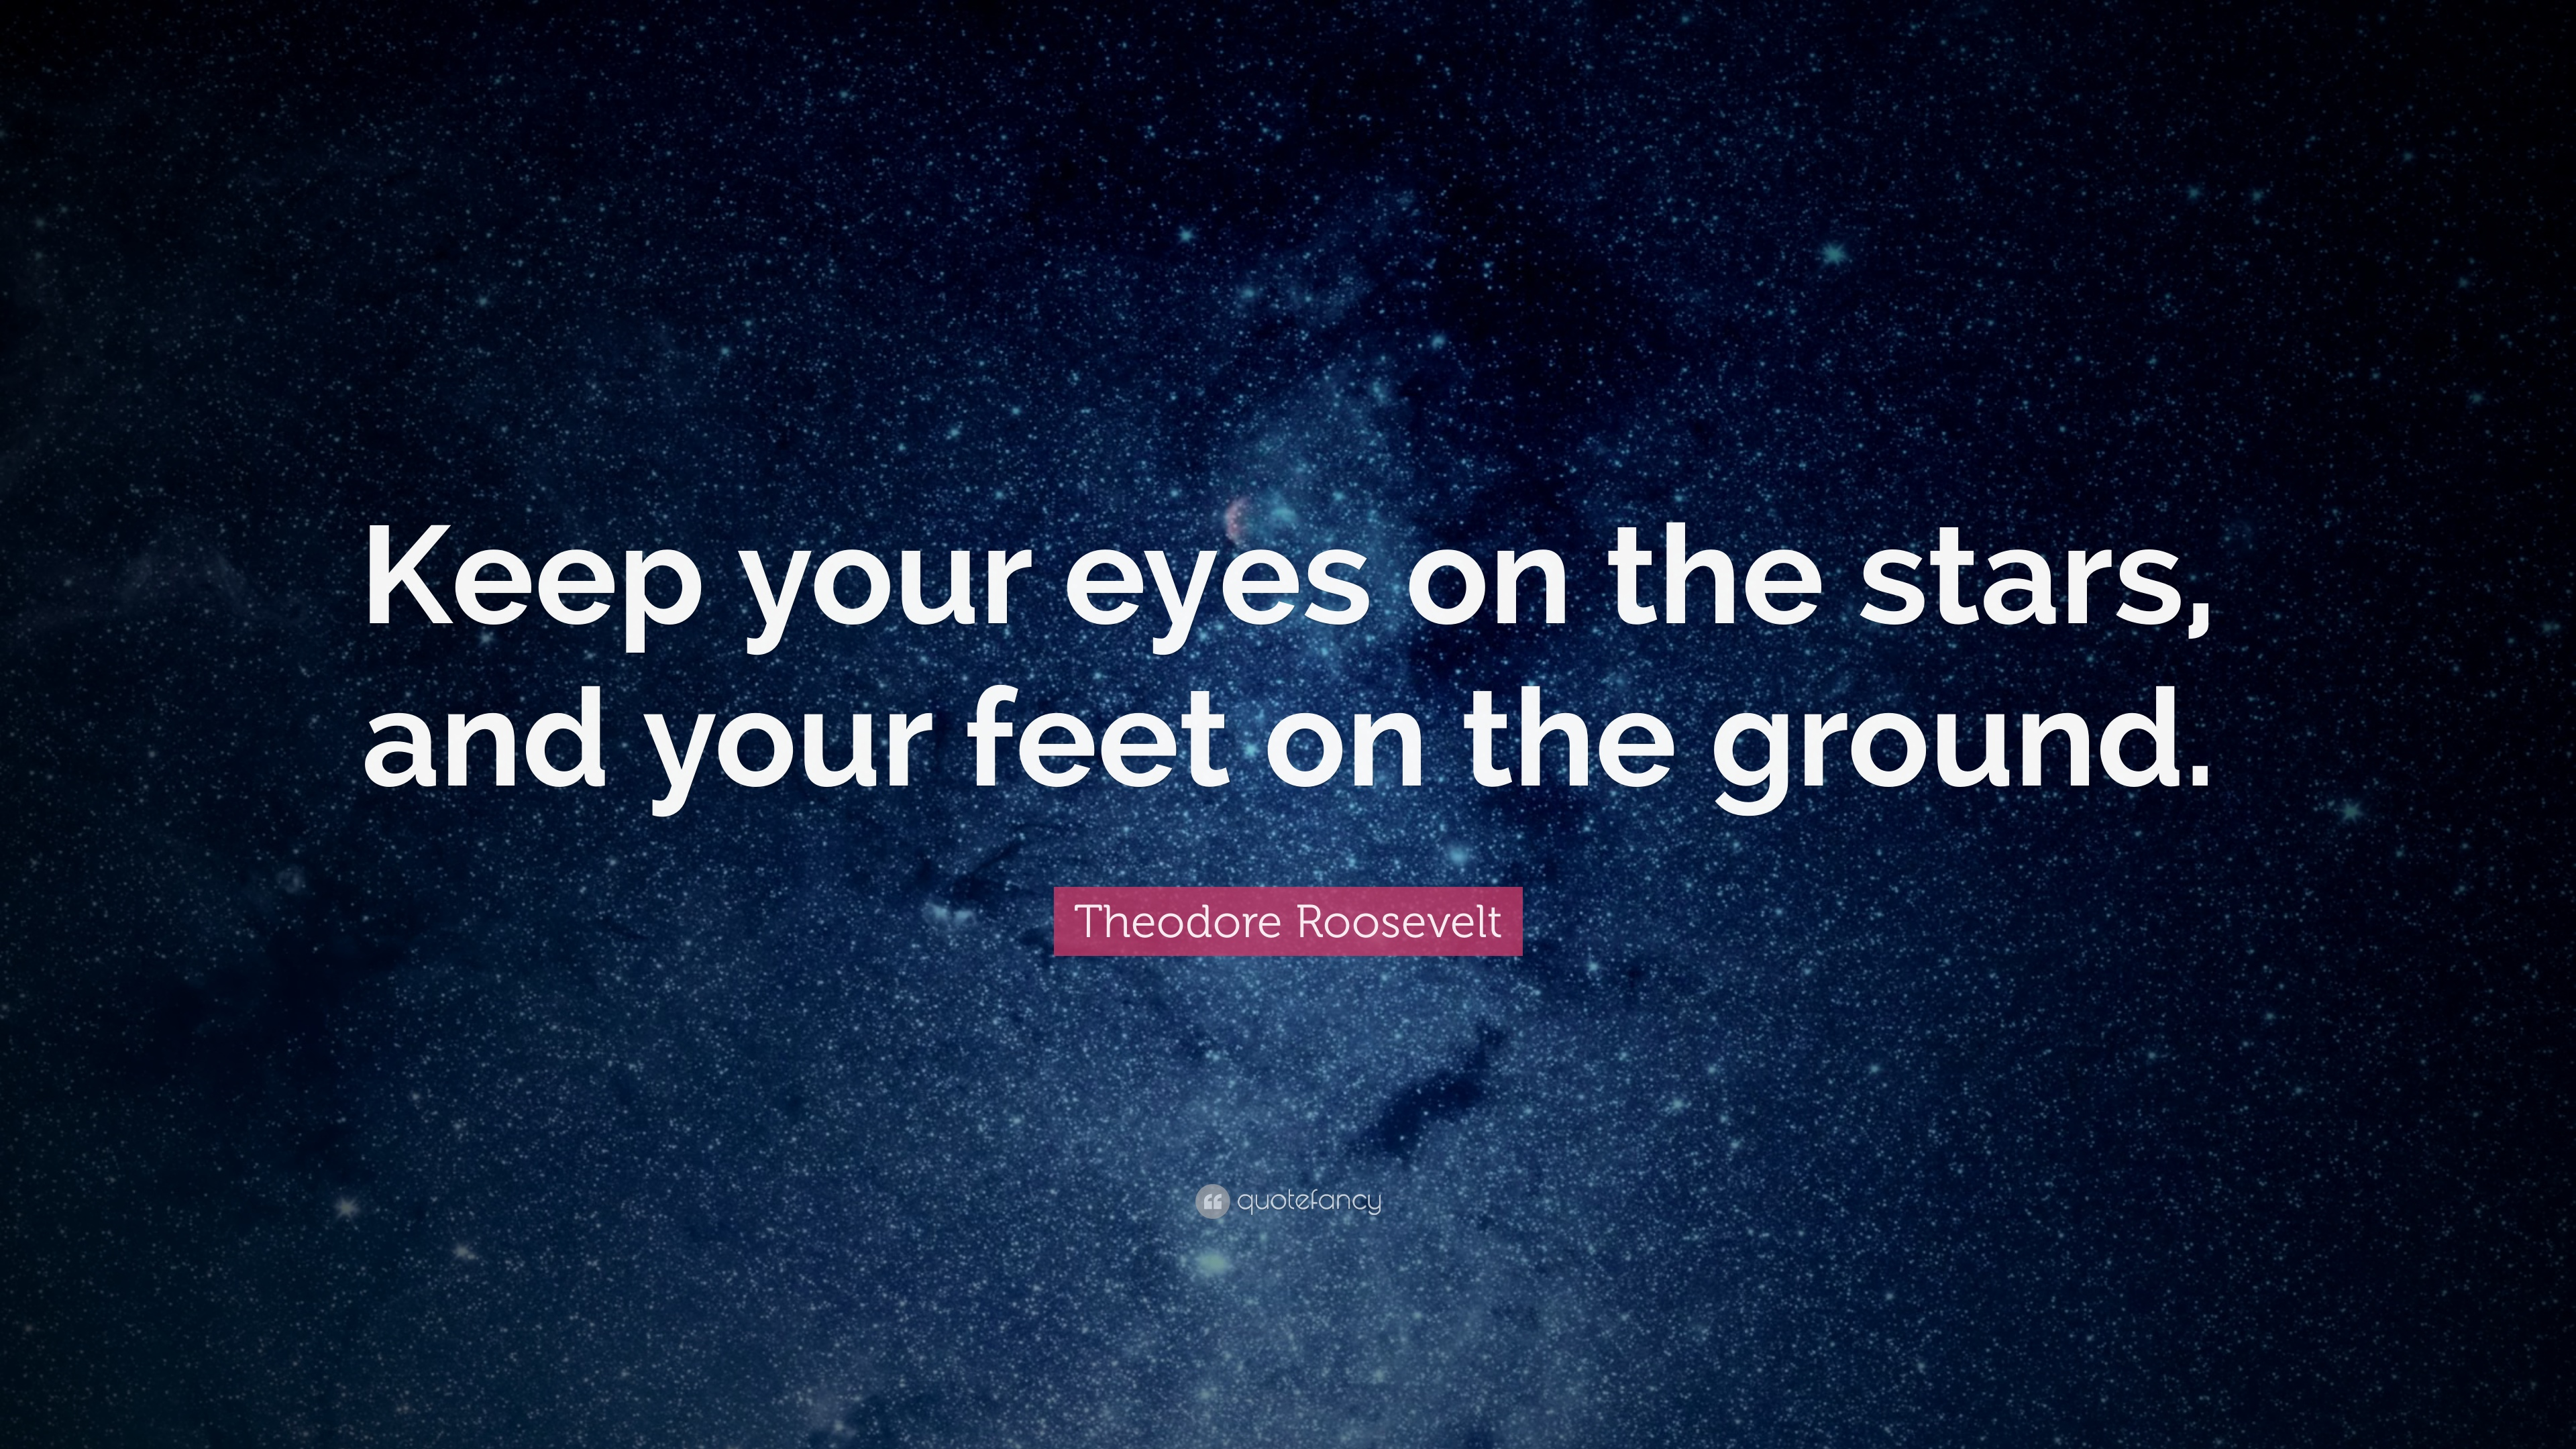 Napoleon Hill Quotes Wallpaper Theodore Roosevelt Quote Keep Your Eyes On The Stars